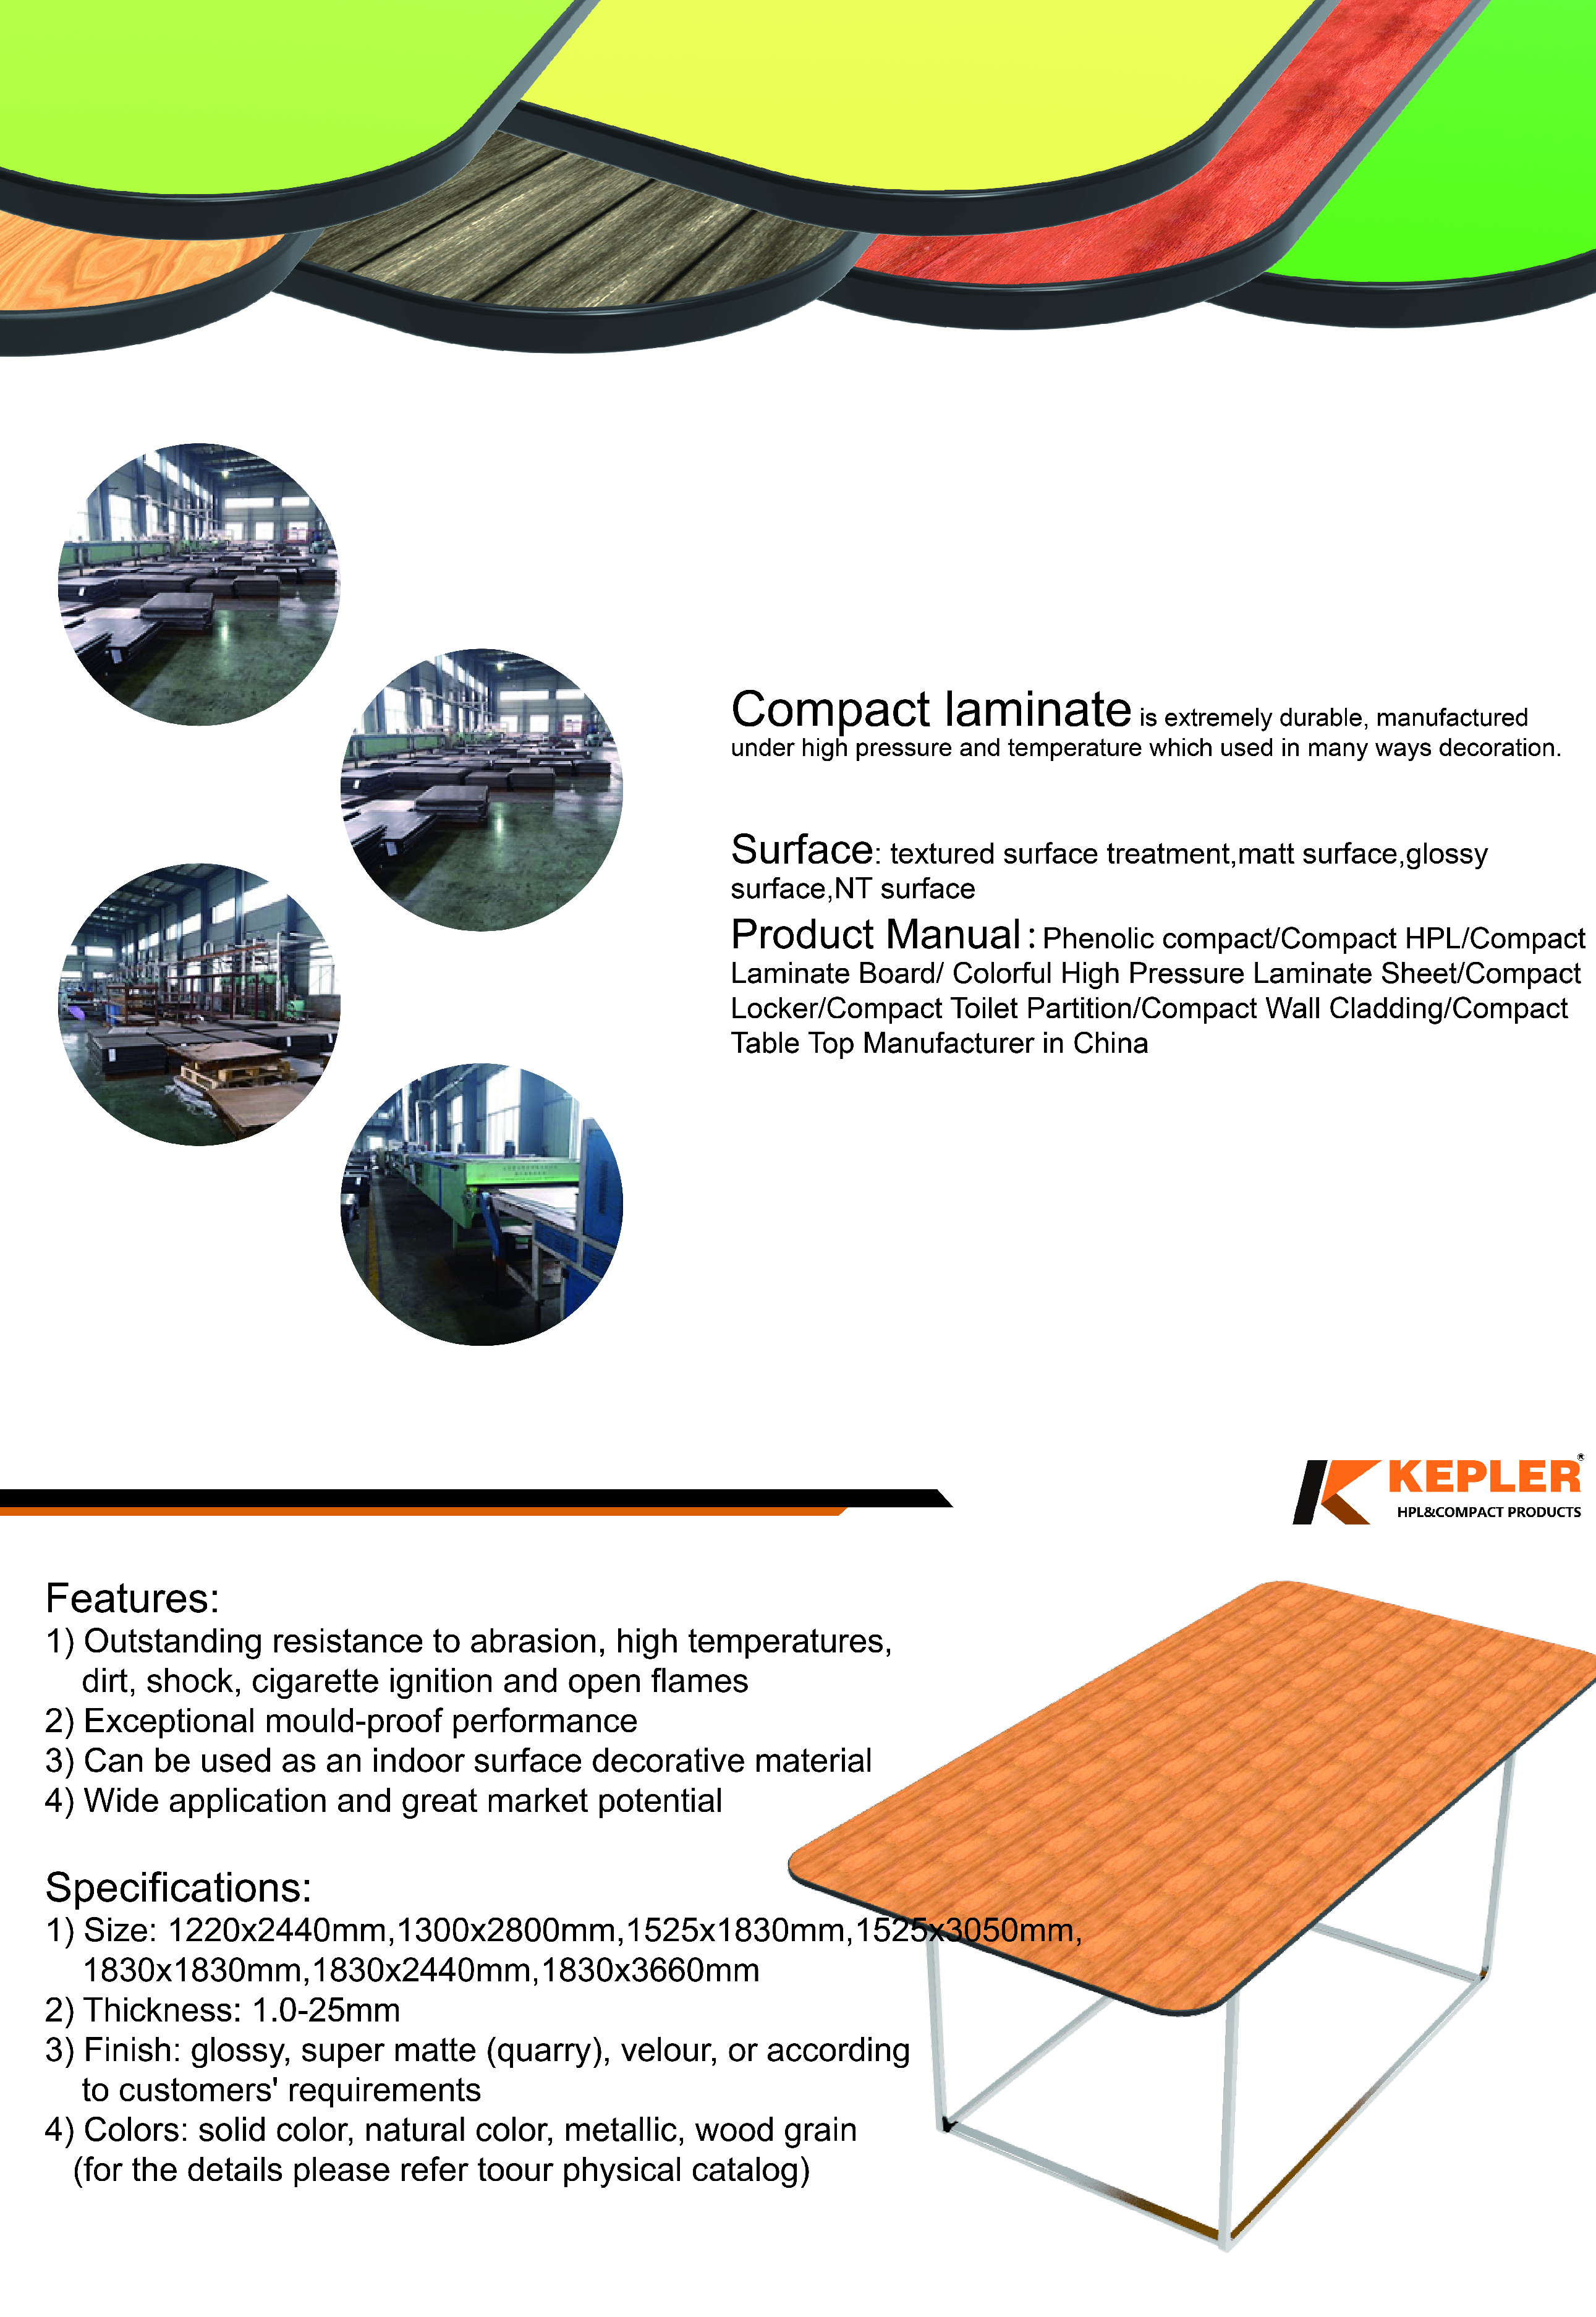 what about table top,kepler brand HPL table top is made of high grade phenolic compact laminate with features on weather resistant, scratch resistant, UV-resistant(for outdoor grade), Widely used in surface decoration of restaurant, cafe ,school, office , garden ,swimming pool ,and other commercial center. They are superb in quality and fashionable in design. Our tabletop have enjoyed a very good reputation in global market.